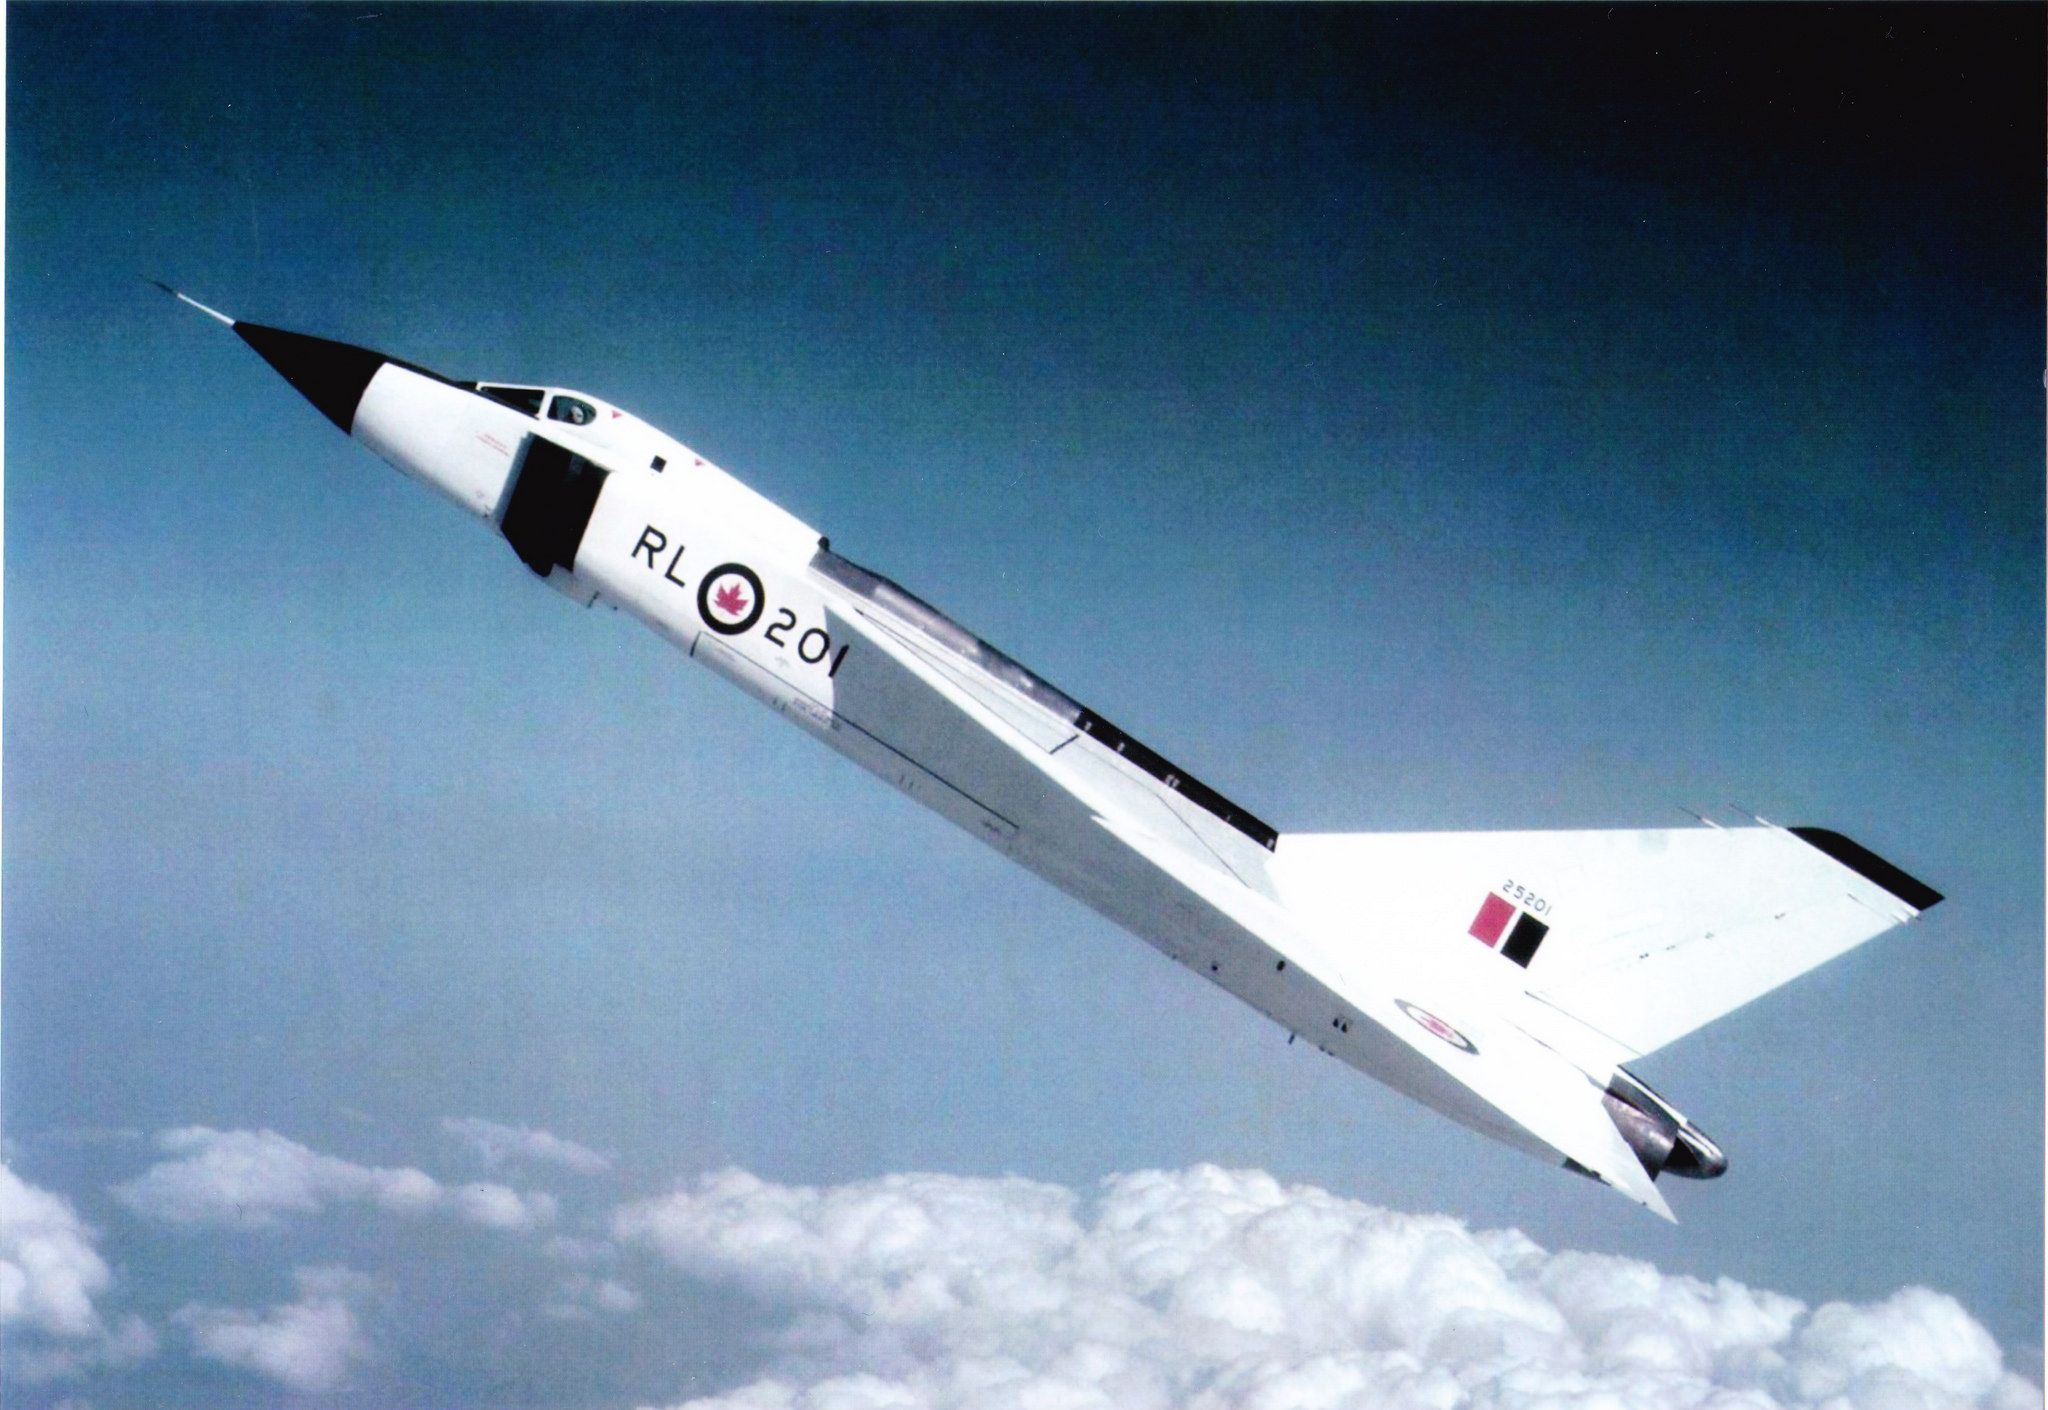 Avro Arrow RL201 Avro arrow, Fighter jets, Military aircraft